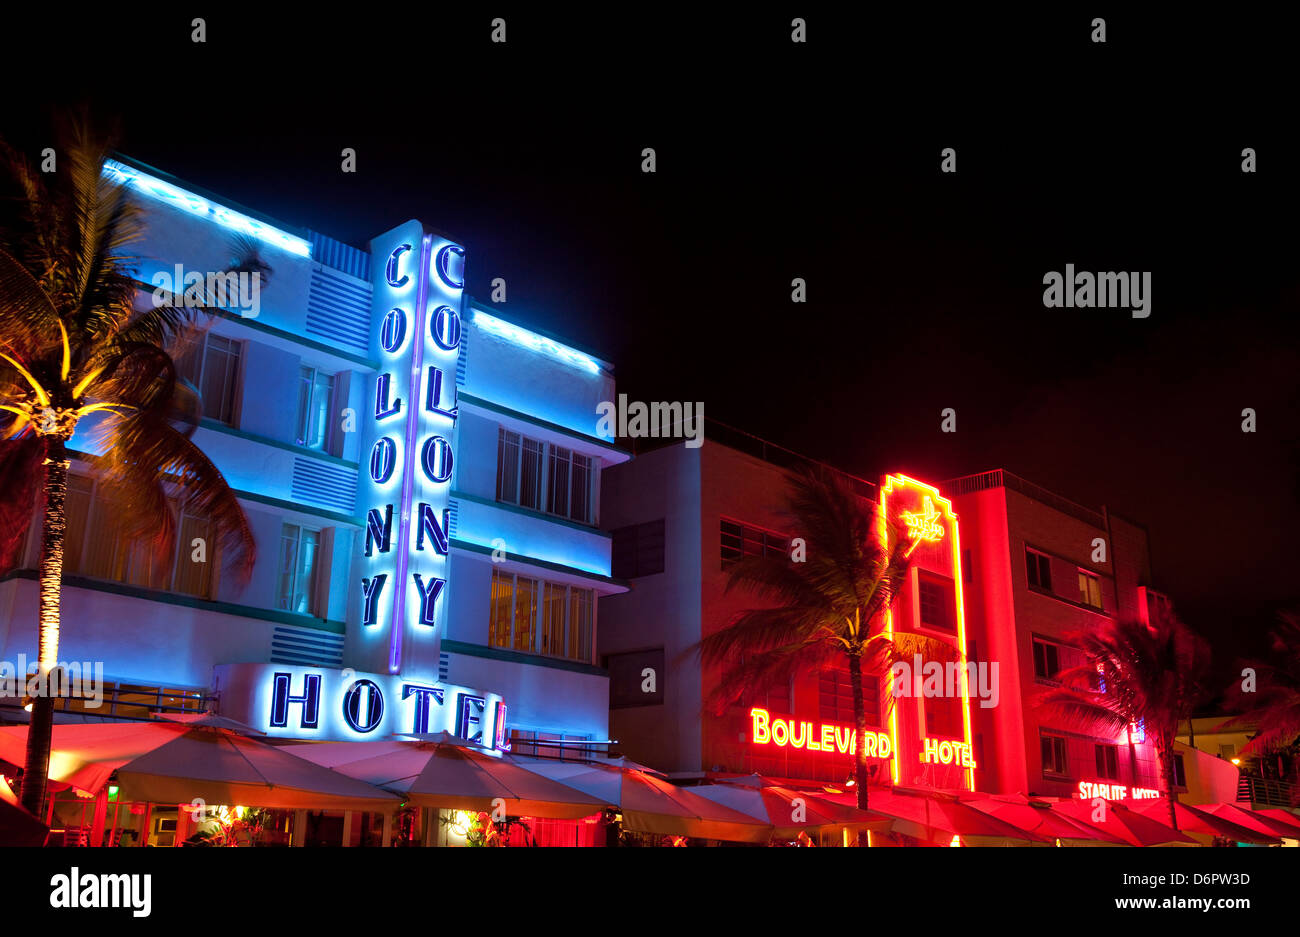 Neon signs lit up at night, Art Deco District, South Beach, Miami